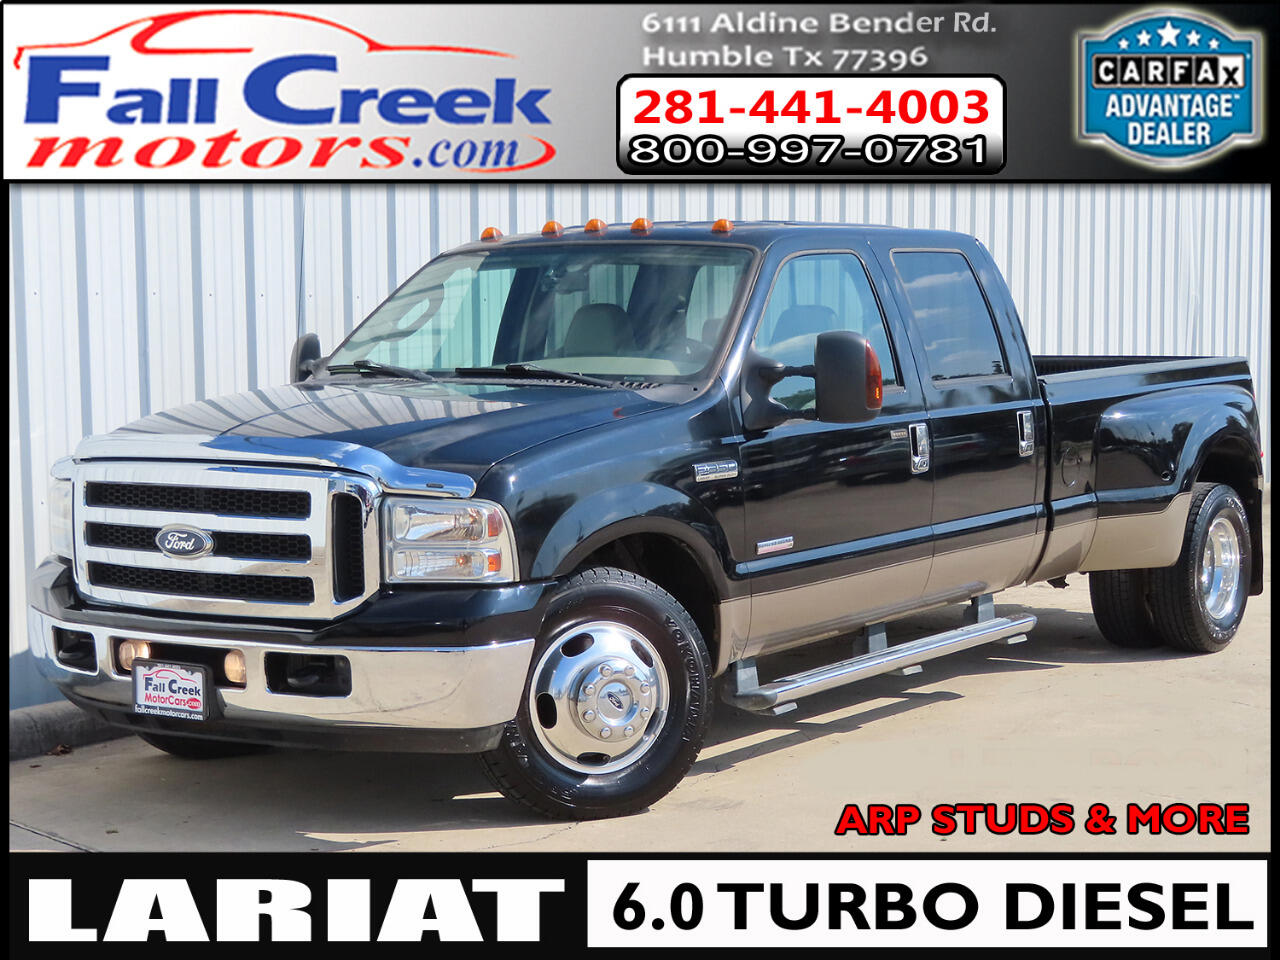 Ford F-350 SD Lariat Crew Cab Long Bed 2WD DRW 2006